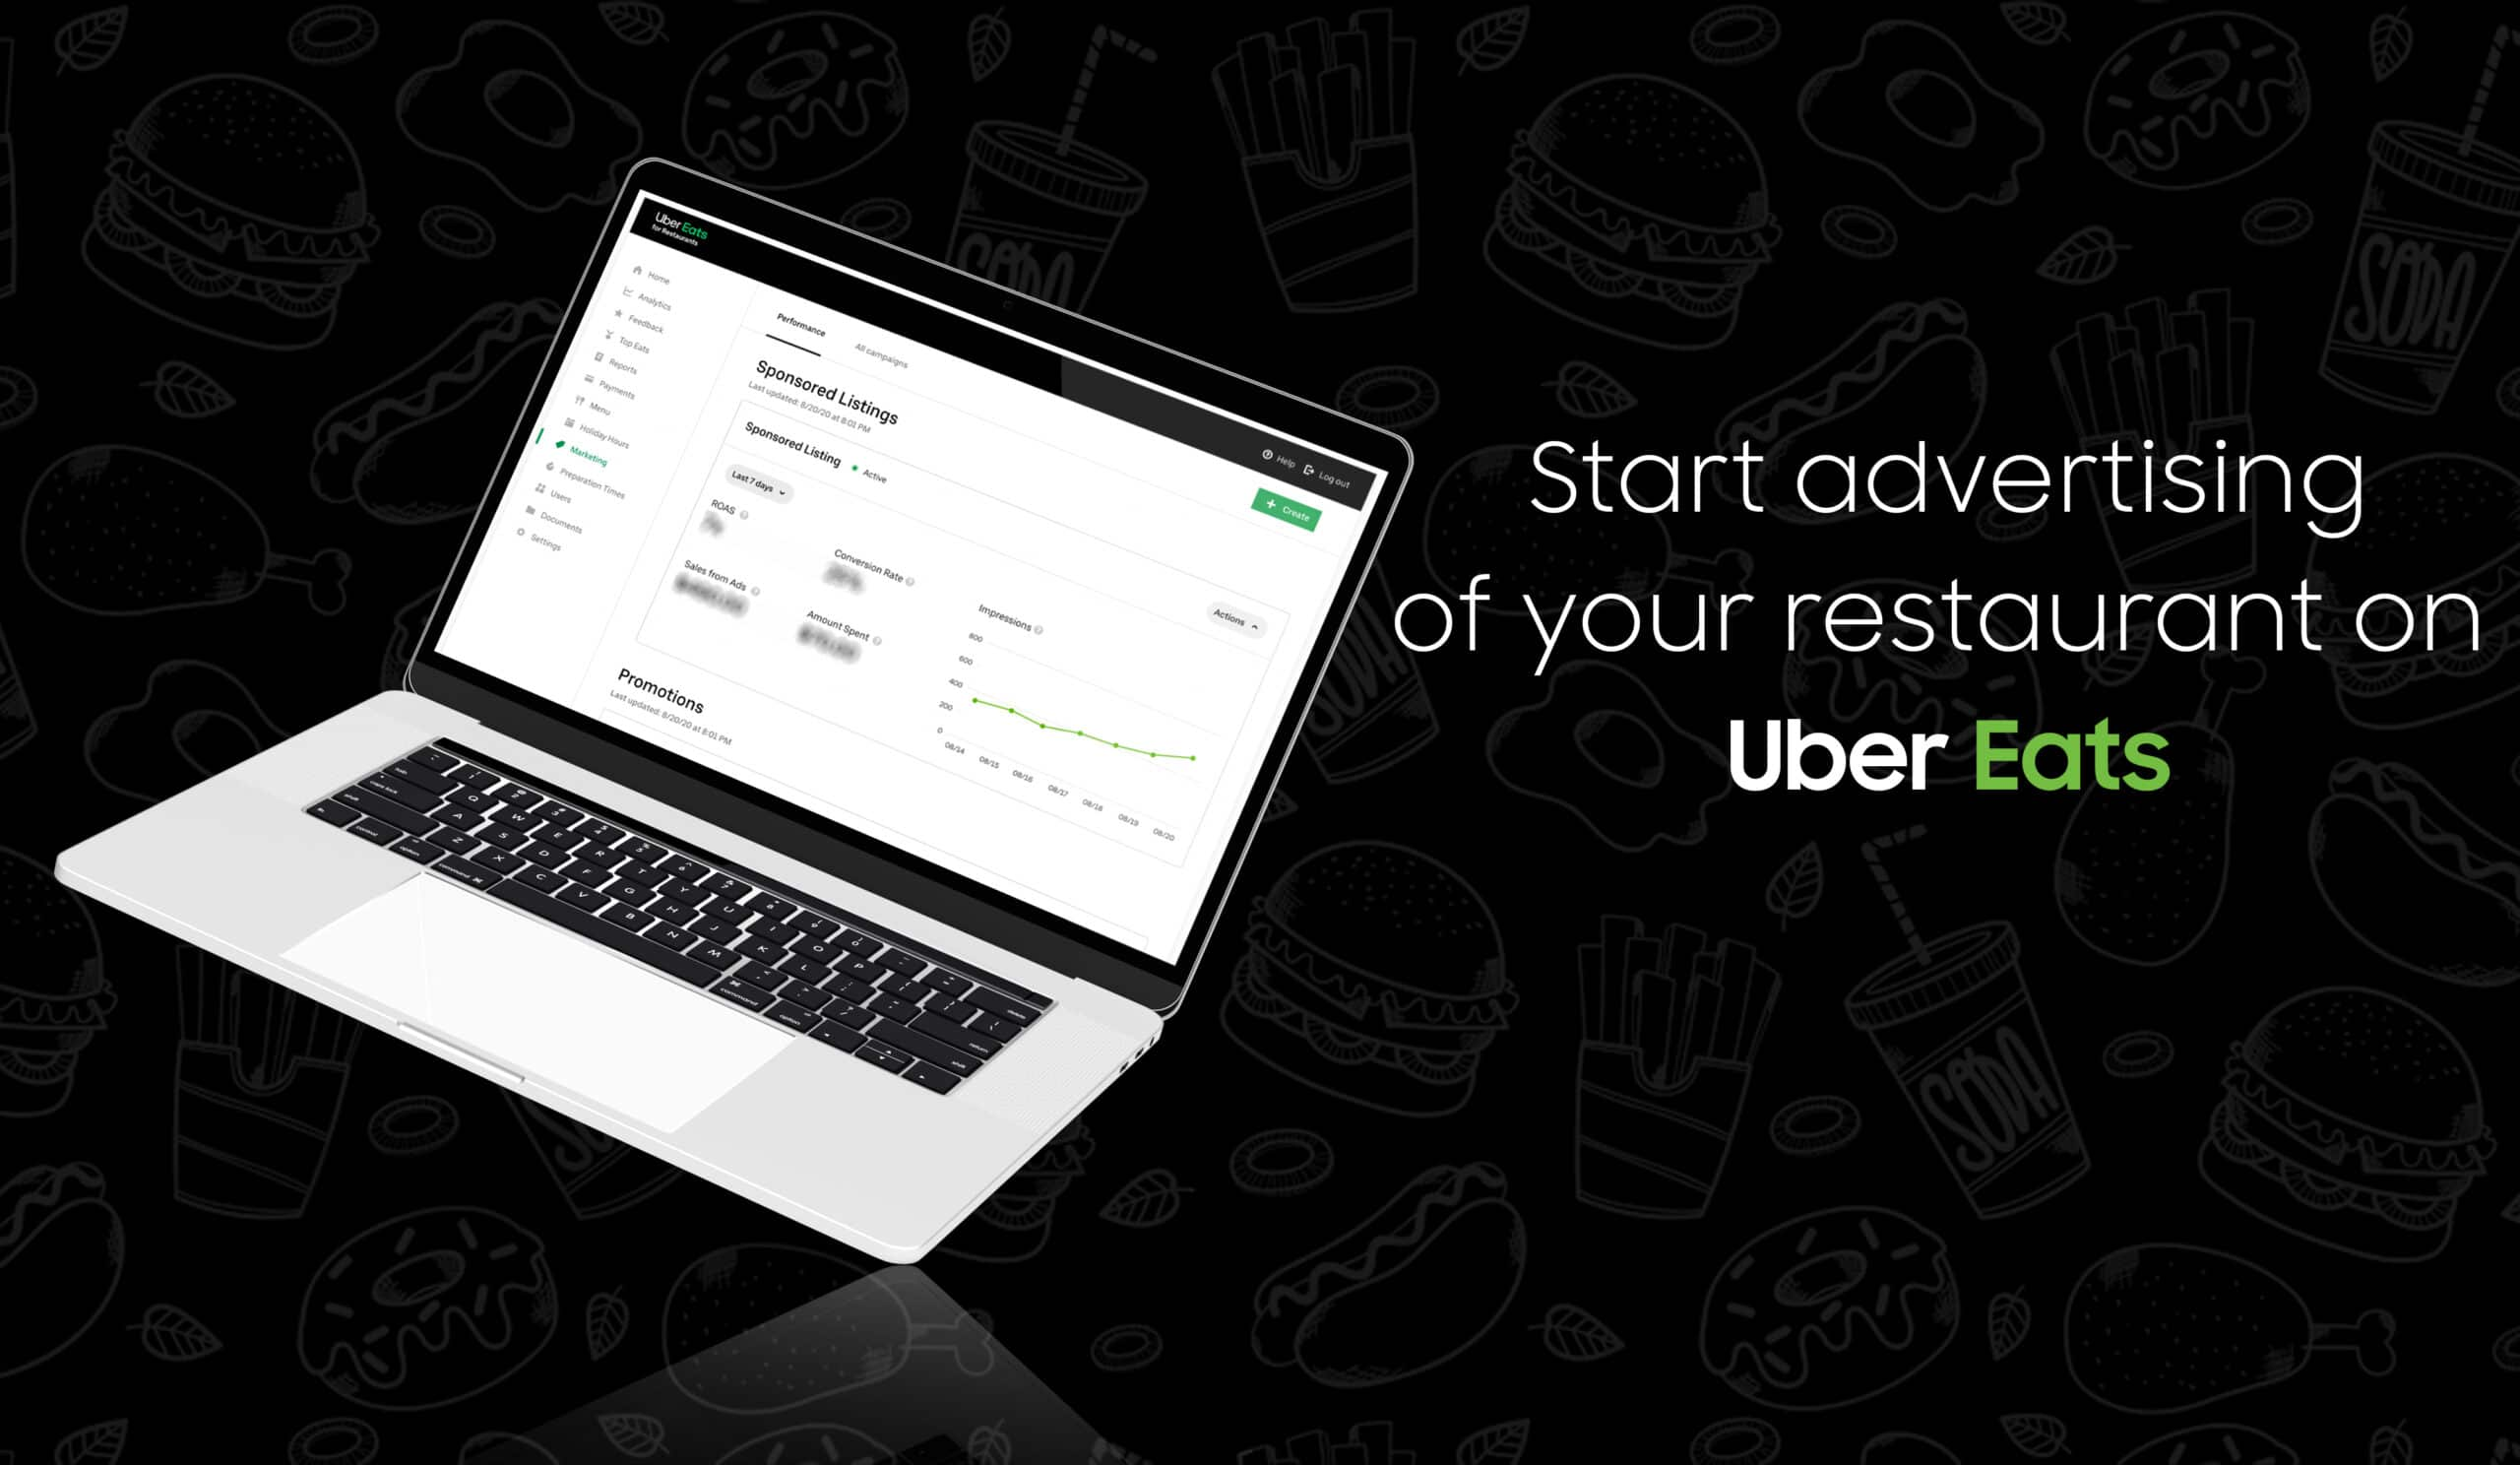 Uber eats advertising agency